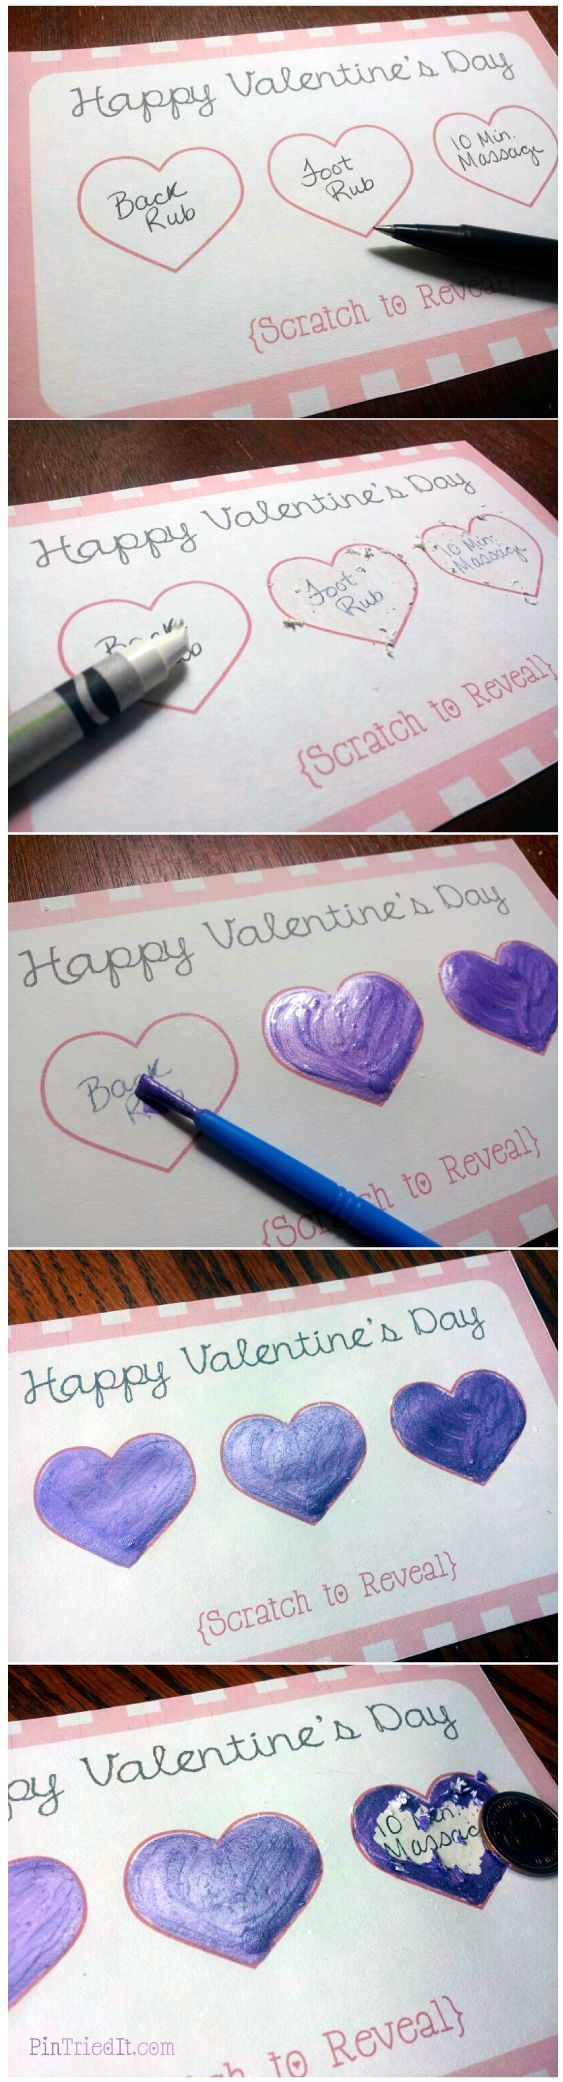 Valentine's Day Scratch Off Tickets - great to know how to DIY scratch cards!                                                                                                                                                                                 More